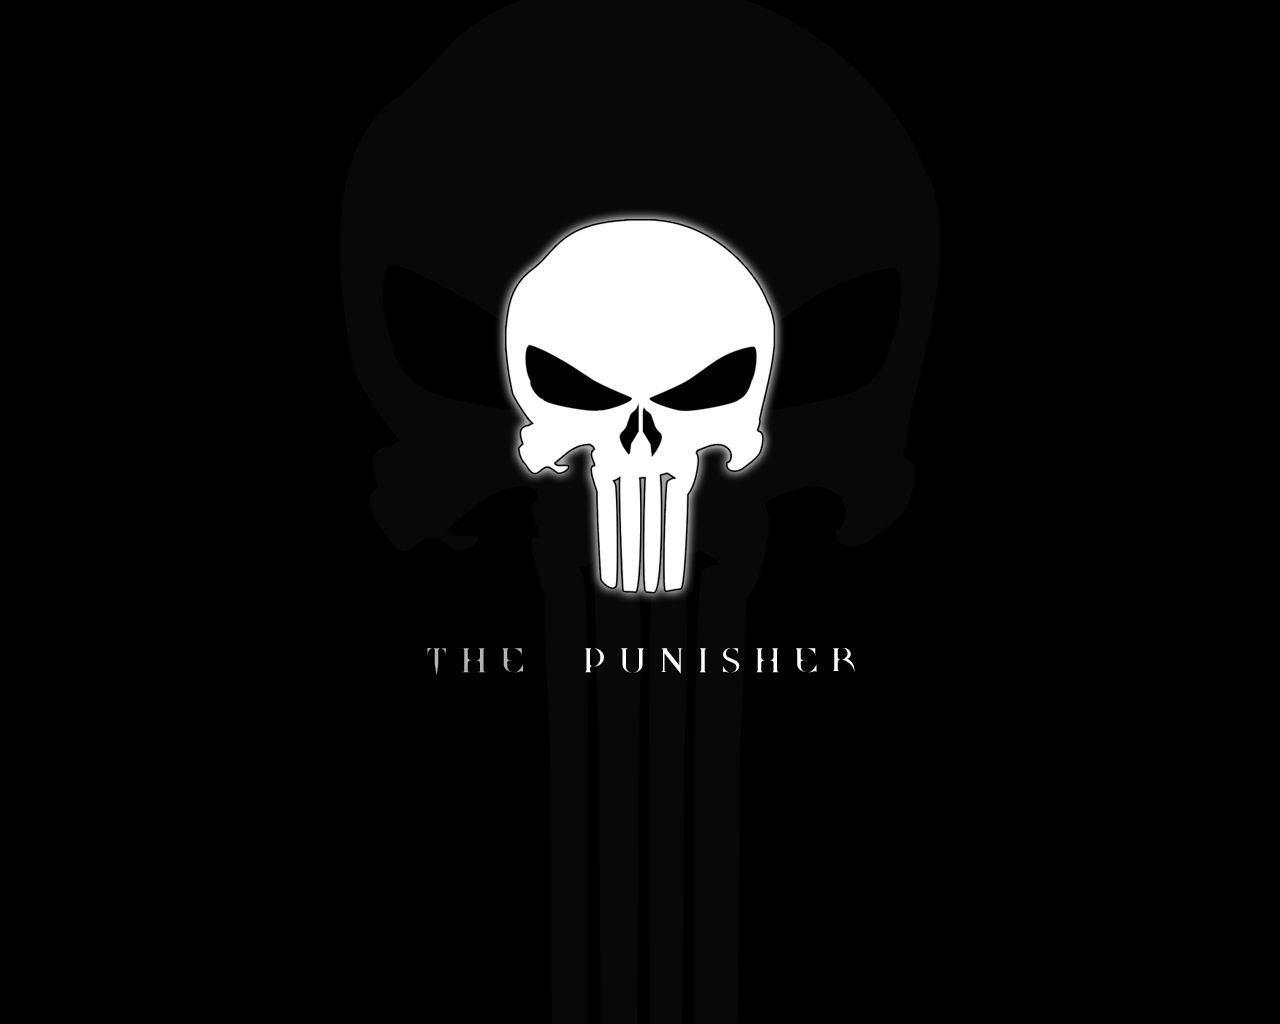 Punisher backgrounds 75 wallpapers hd wallpapers punisher punisher backgrounds 75 wallpapers hd wallpapers voltagebd Gallery